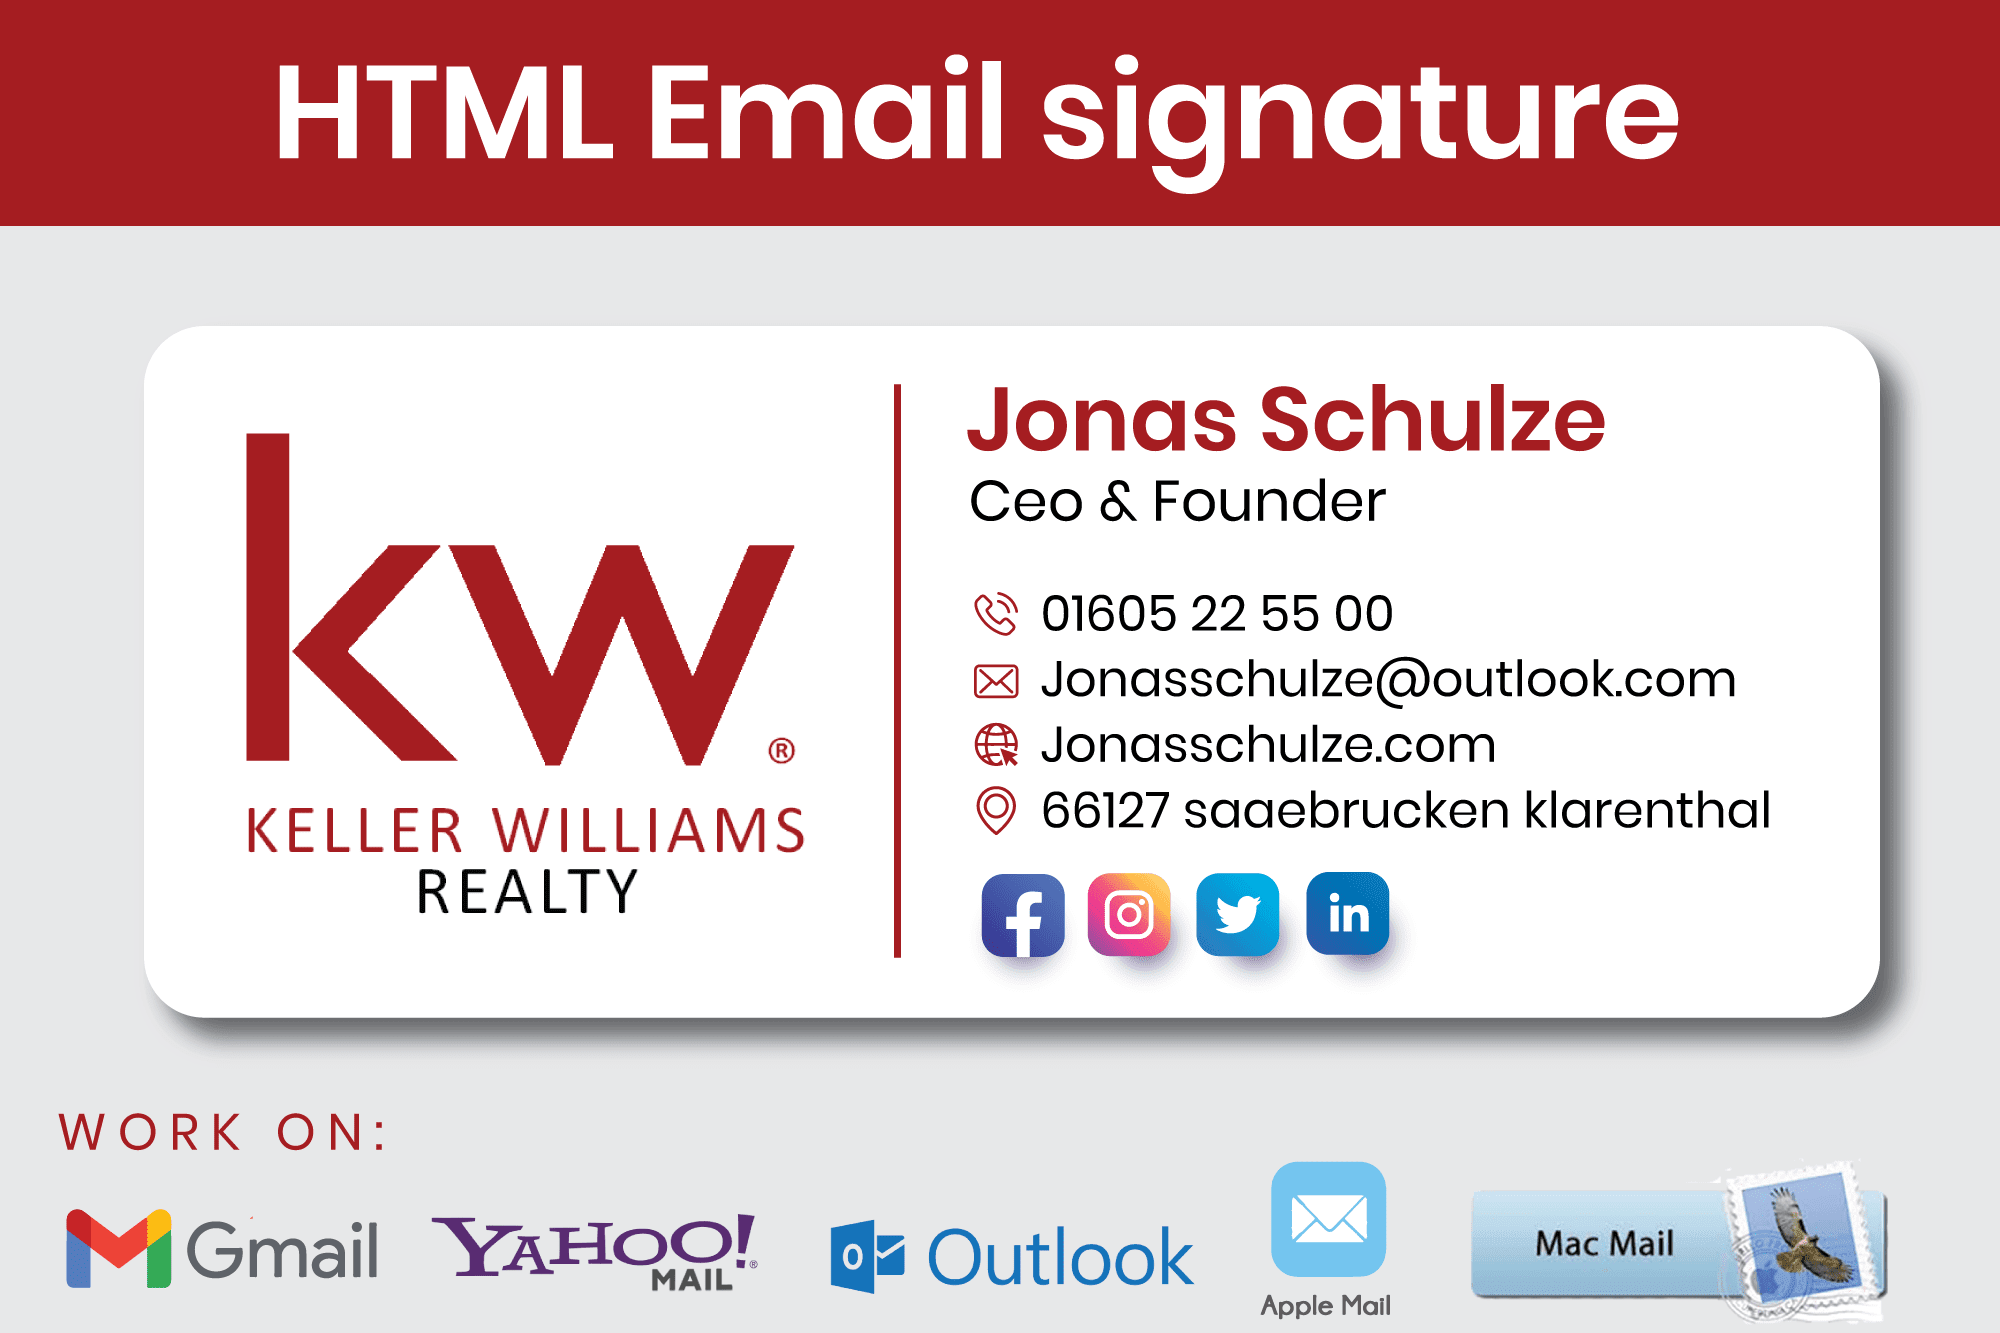 Portfolio for Email signature - HTML (Fully Clickable)